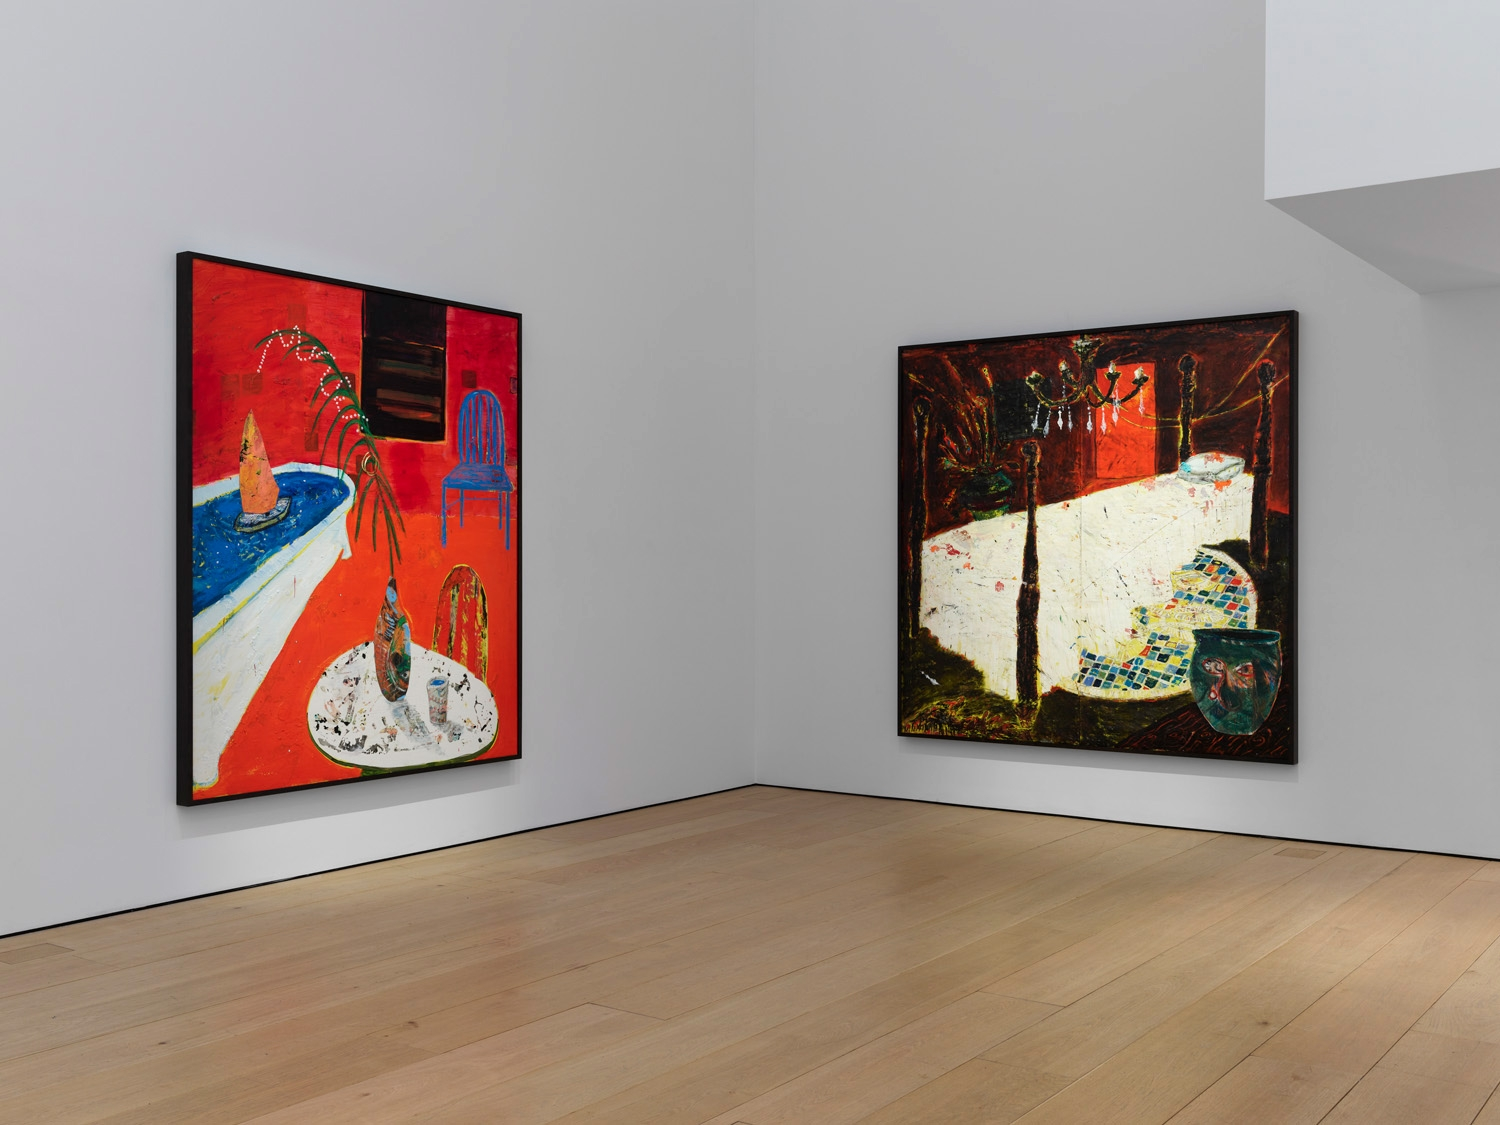 Eighth installation view of the exhibition Angel Otero: The Fortune of Having Been There at Lehmann Maupin in New York